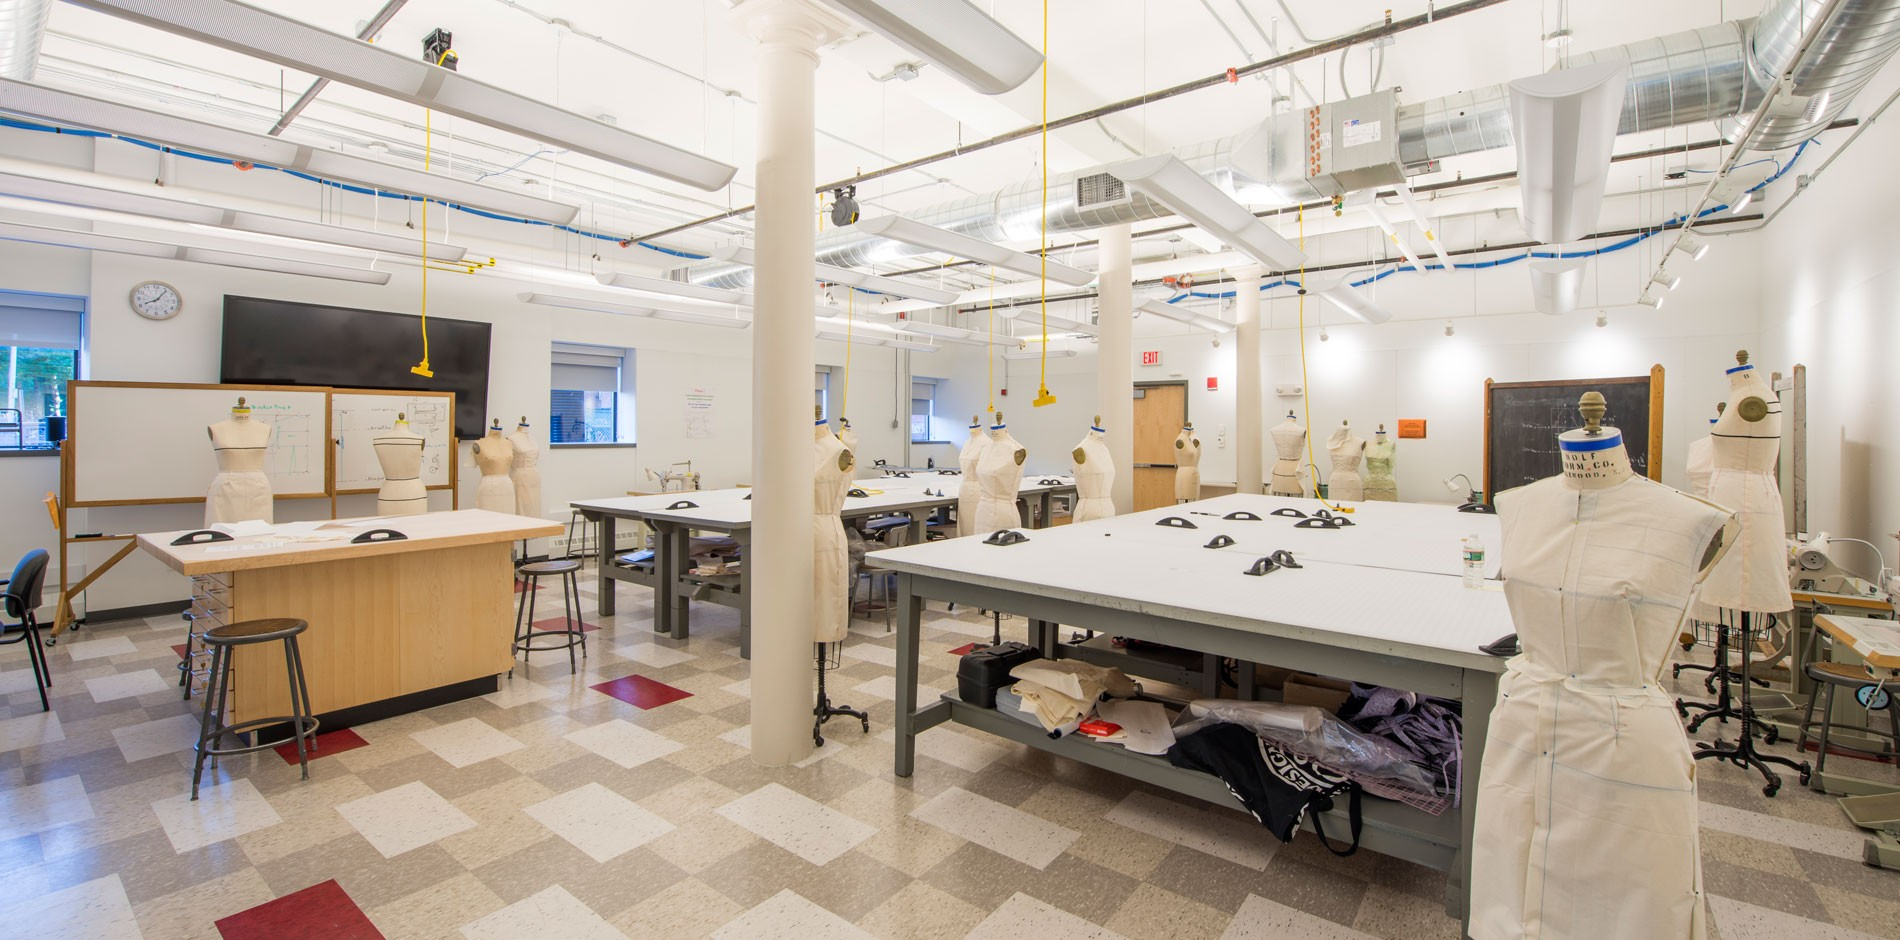 rhode island school of design (risd) - apparel design department